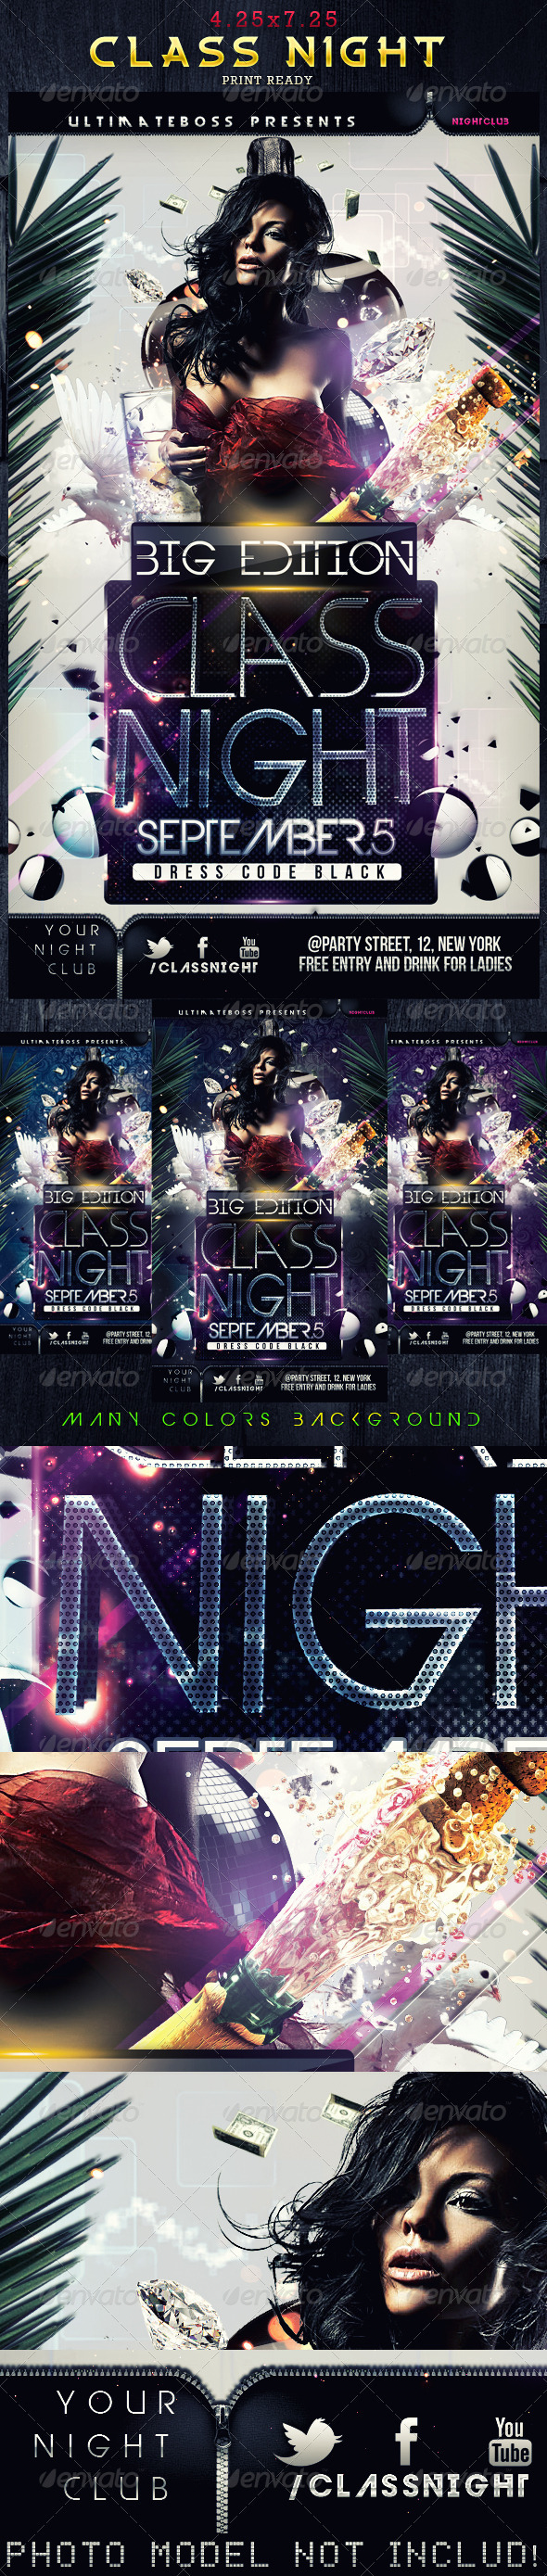 Class Night Flyer - Flyers Print Templates